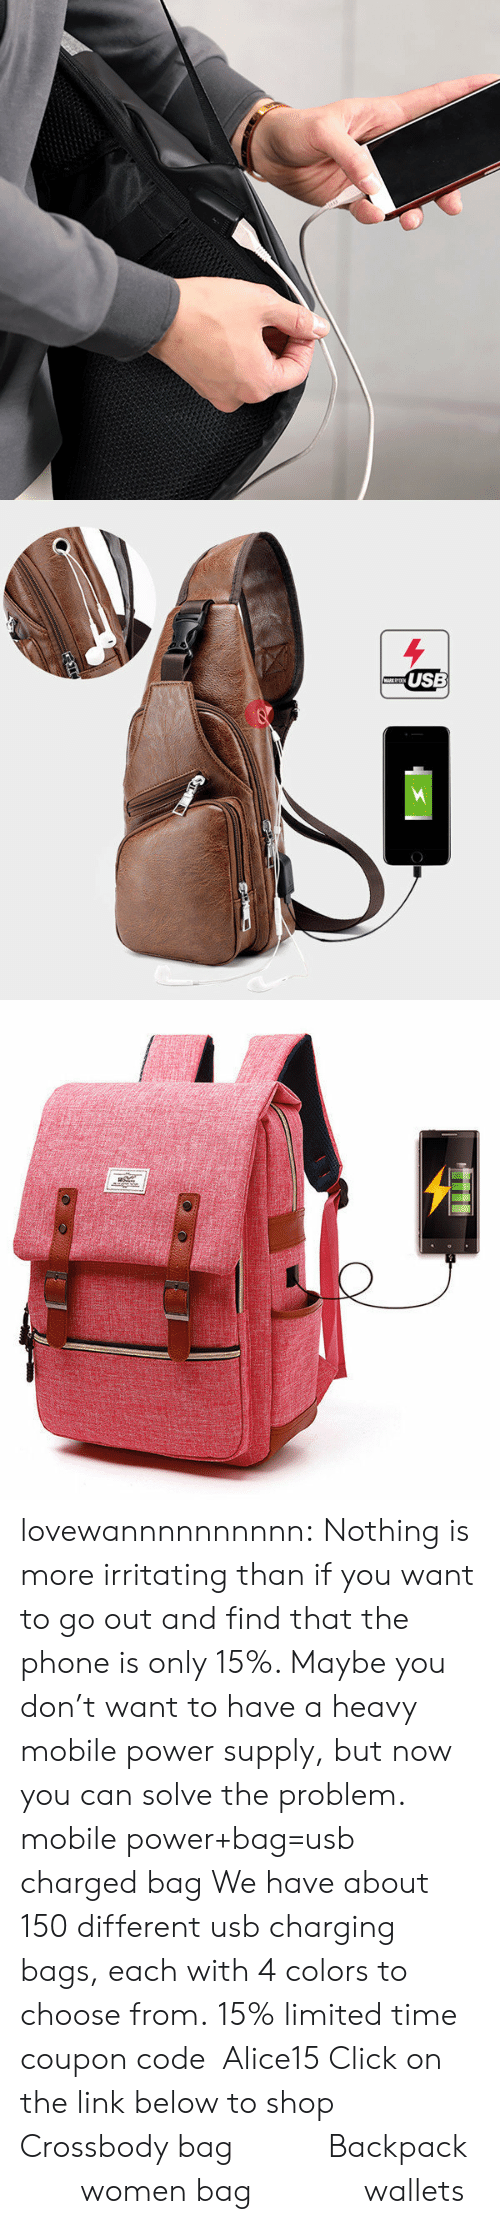 irritating: USB lovewannnnnnnnnn: Nothing is more irritating than if you want to go out and find that the phone is only 15%. Maybe you don't want to have a heavy mobile power supply, but now you can solve the problem. mobile power+bag=usb charged bag We have about 150 different usb charging bags, each with 4 colors to choose from. 15% limited time coupon code:Alice15 Click on the link below to shop Crossbody bag           Backpack         women bag             wallets